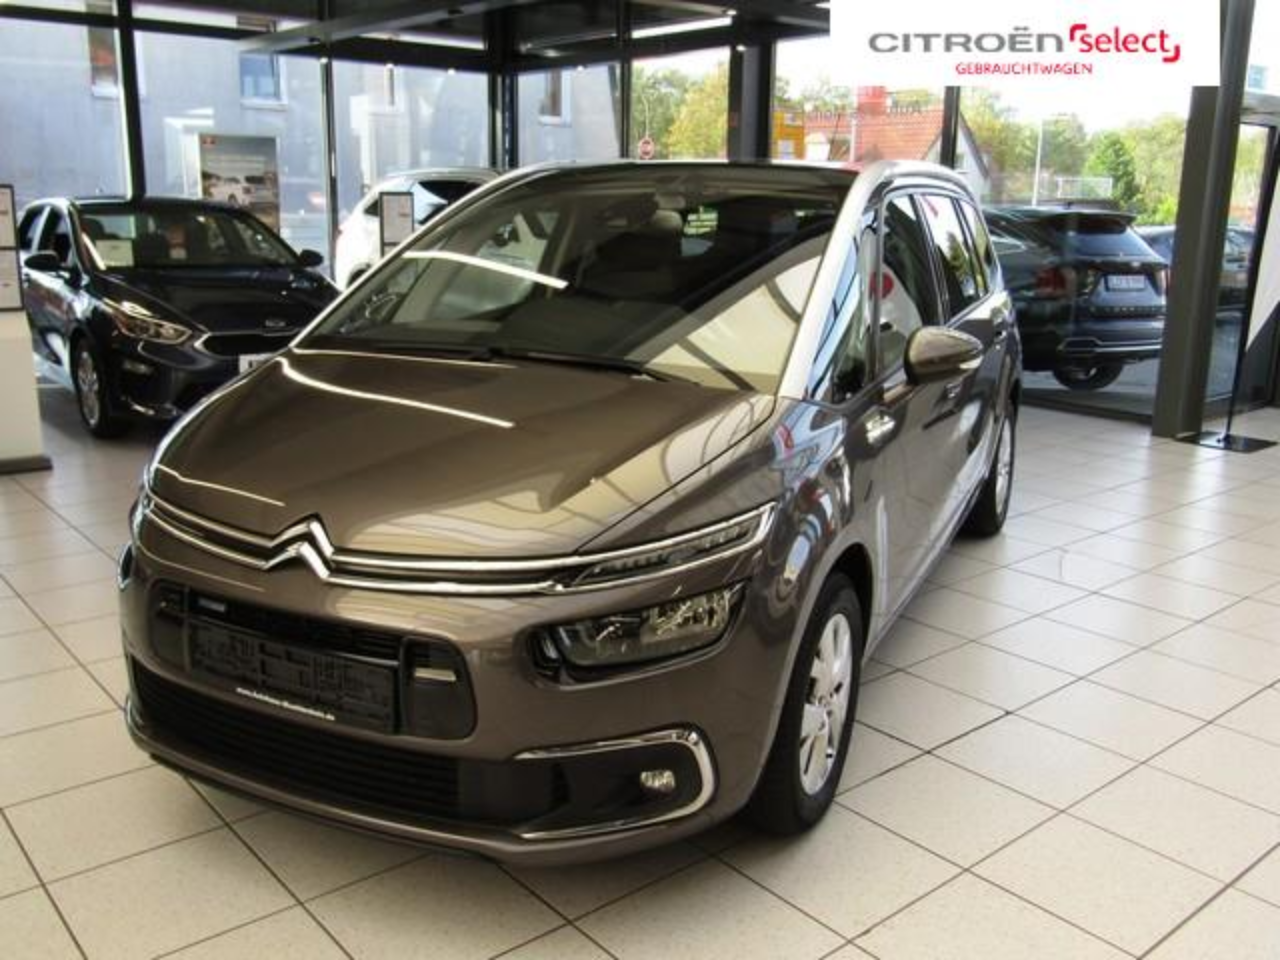 Citroën Grand C4 Picasso 1.2 PureTech 130 Selection S&S